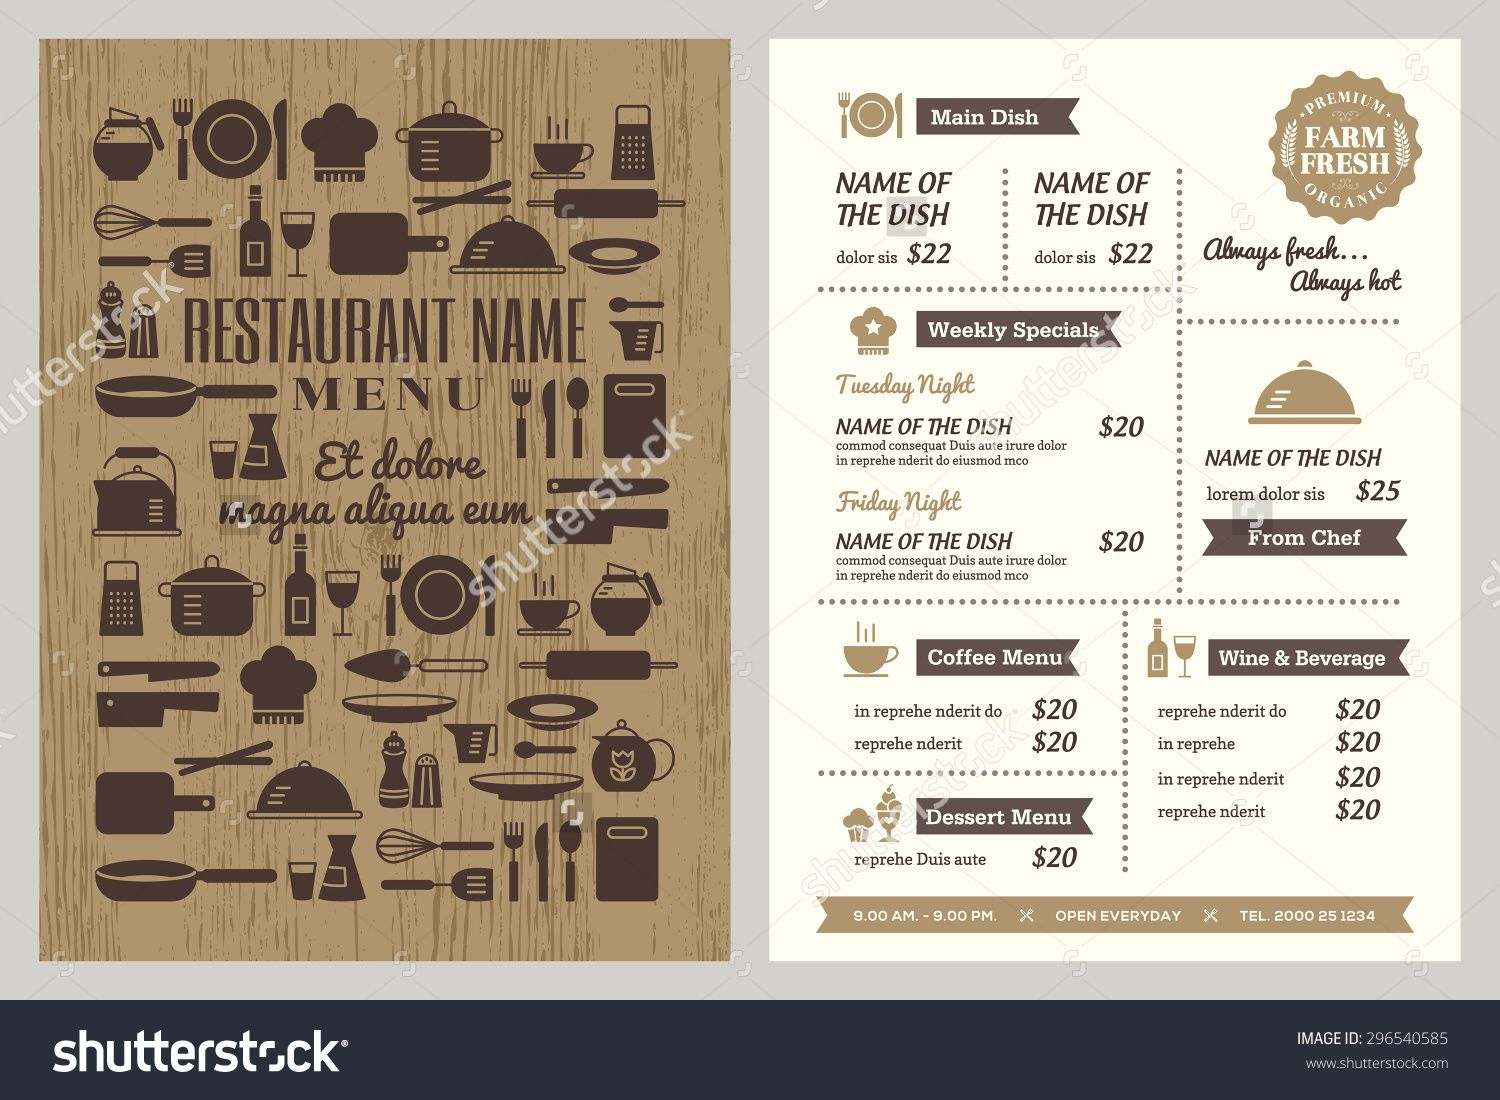 Restaurant Menu Design Template With Silhouette Kitchen Utensils